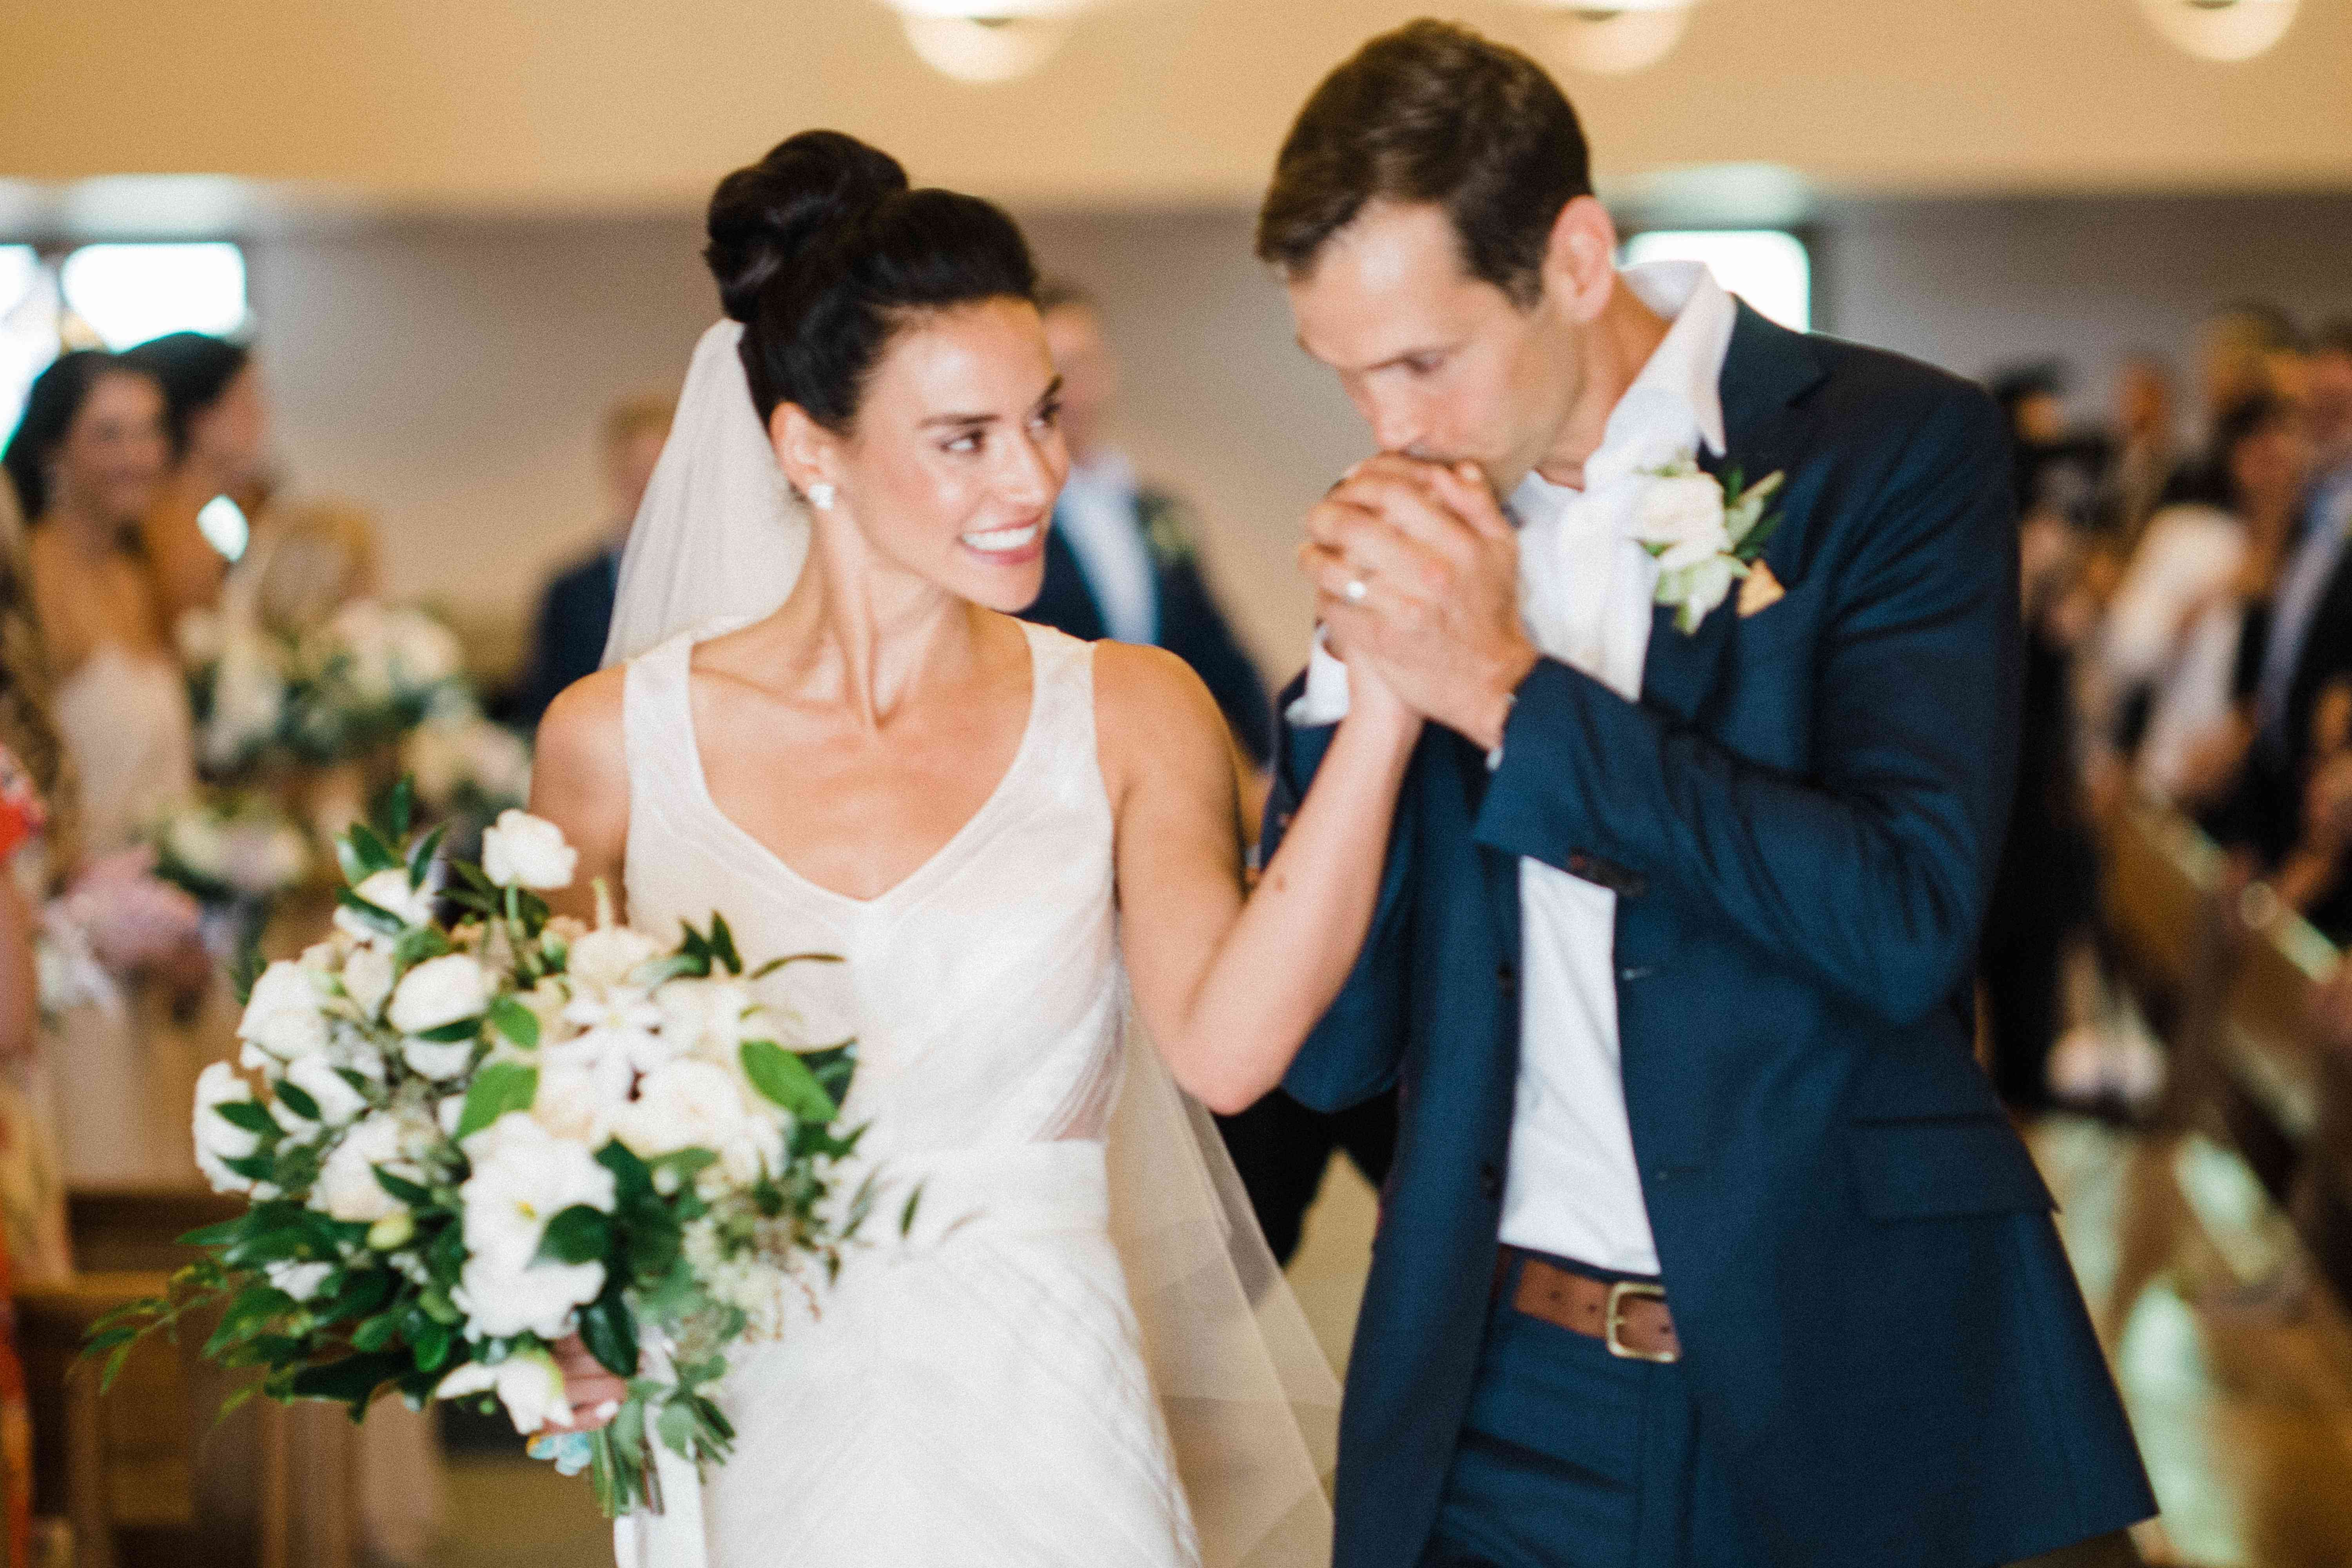 <p>Bride and groom during recessional</p><br><br>